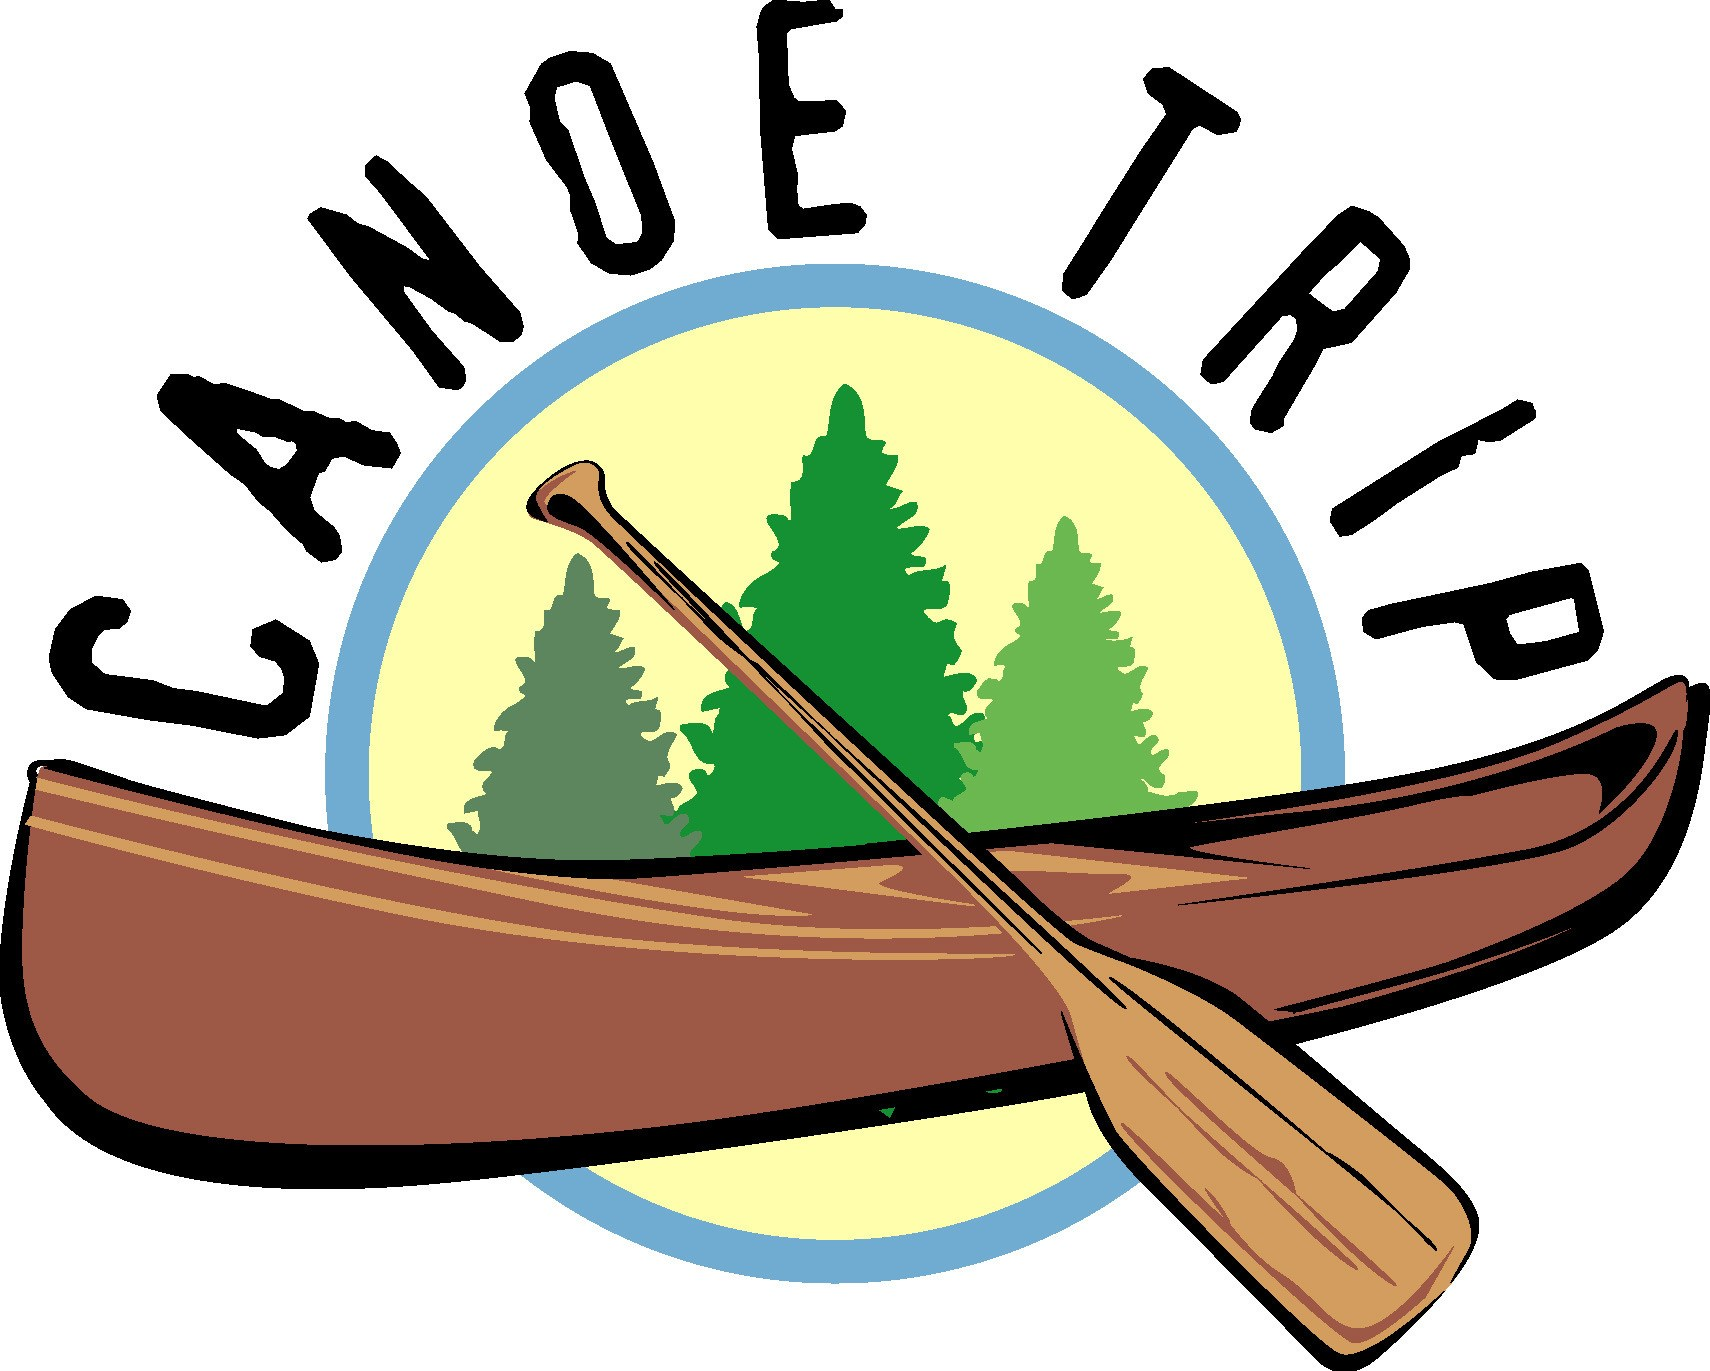 Canoe clipart youth, Canoe youth Transparent FREE for.